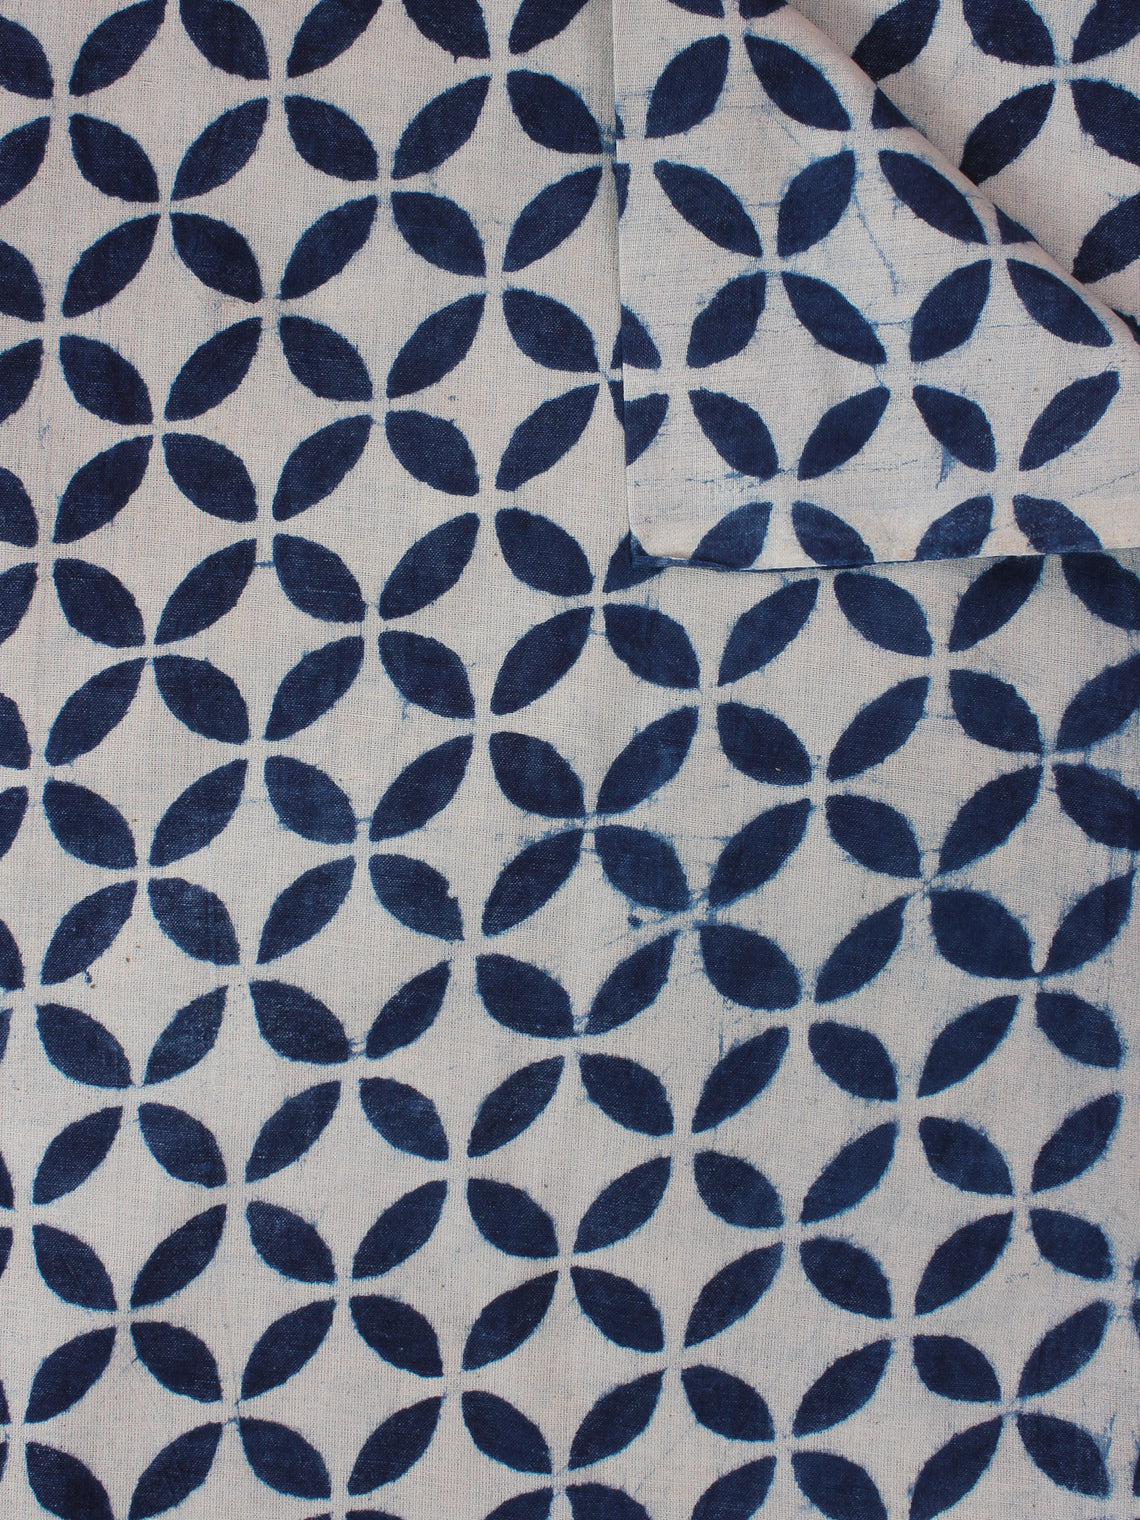 White Indigo Hand Block Printed Cotton Fabric Per Meter - F0916357